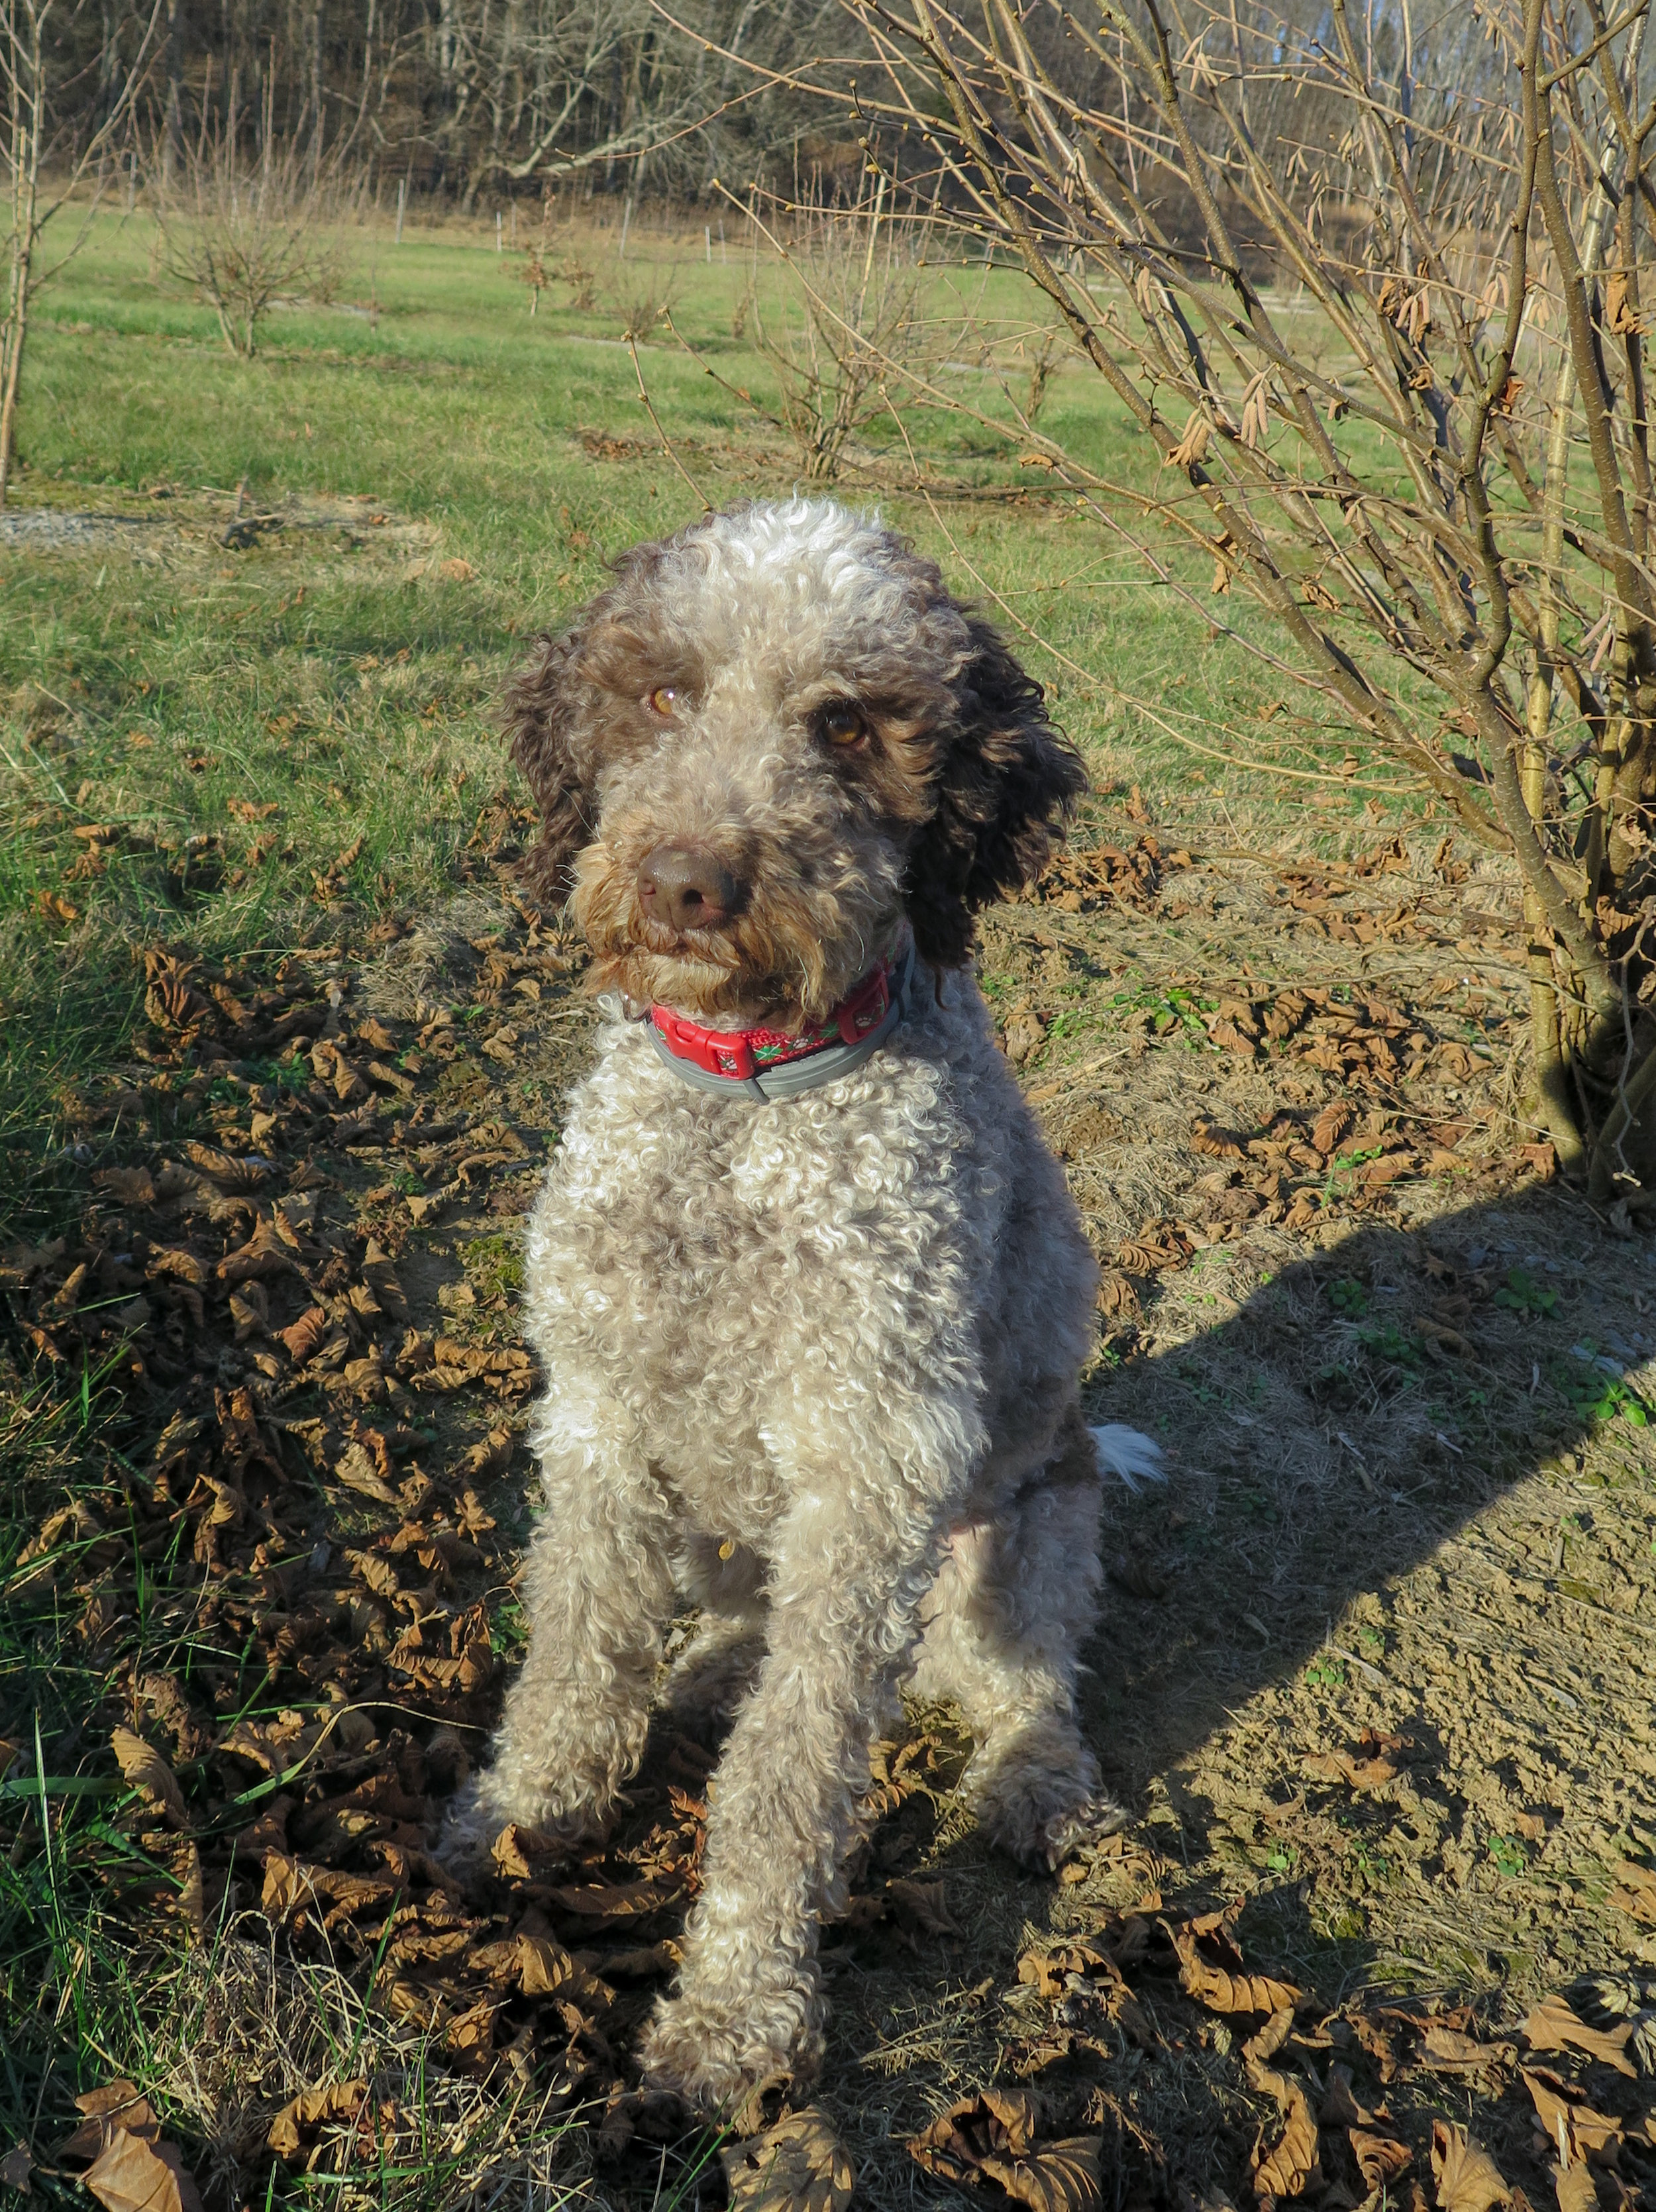 Monza is a Lagotto Romagnolo, an Italian breed that has been truffle-hunting for centuries.